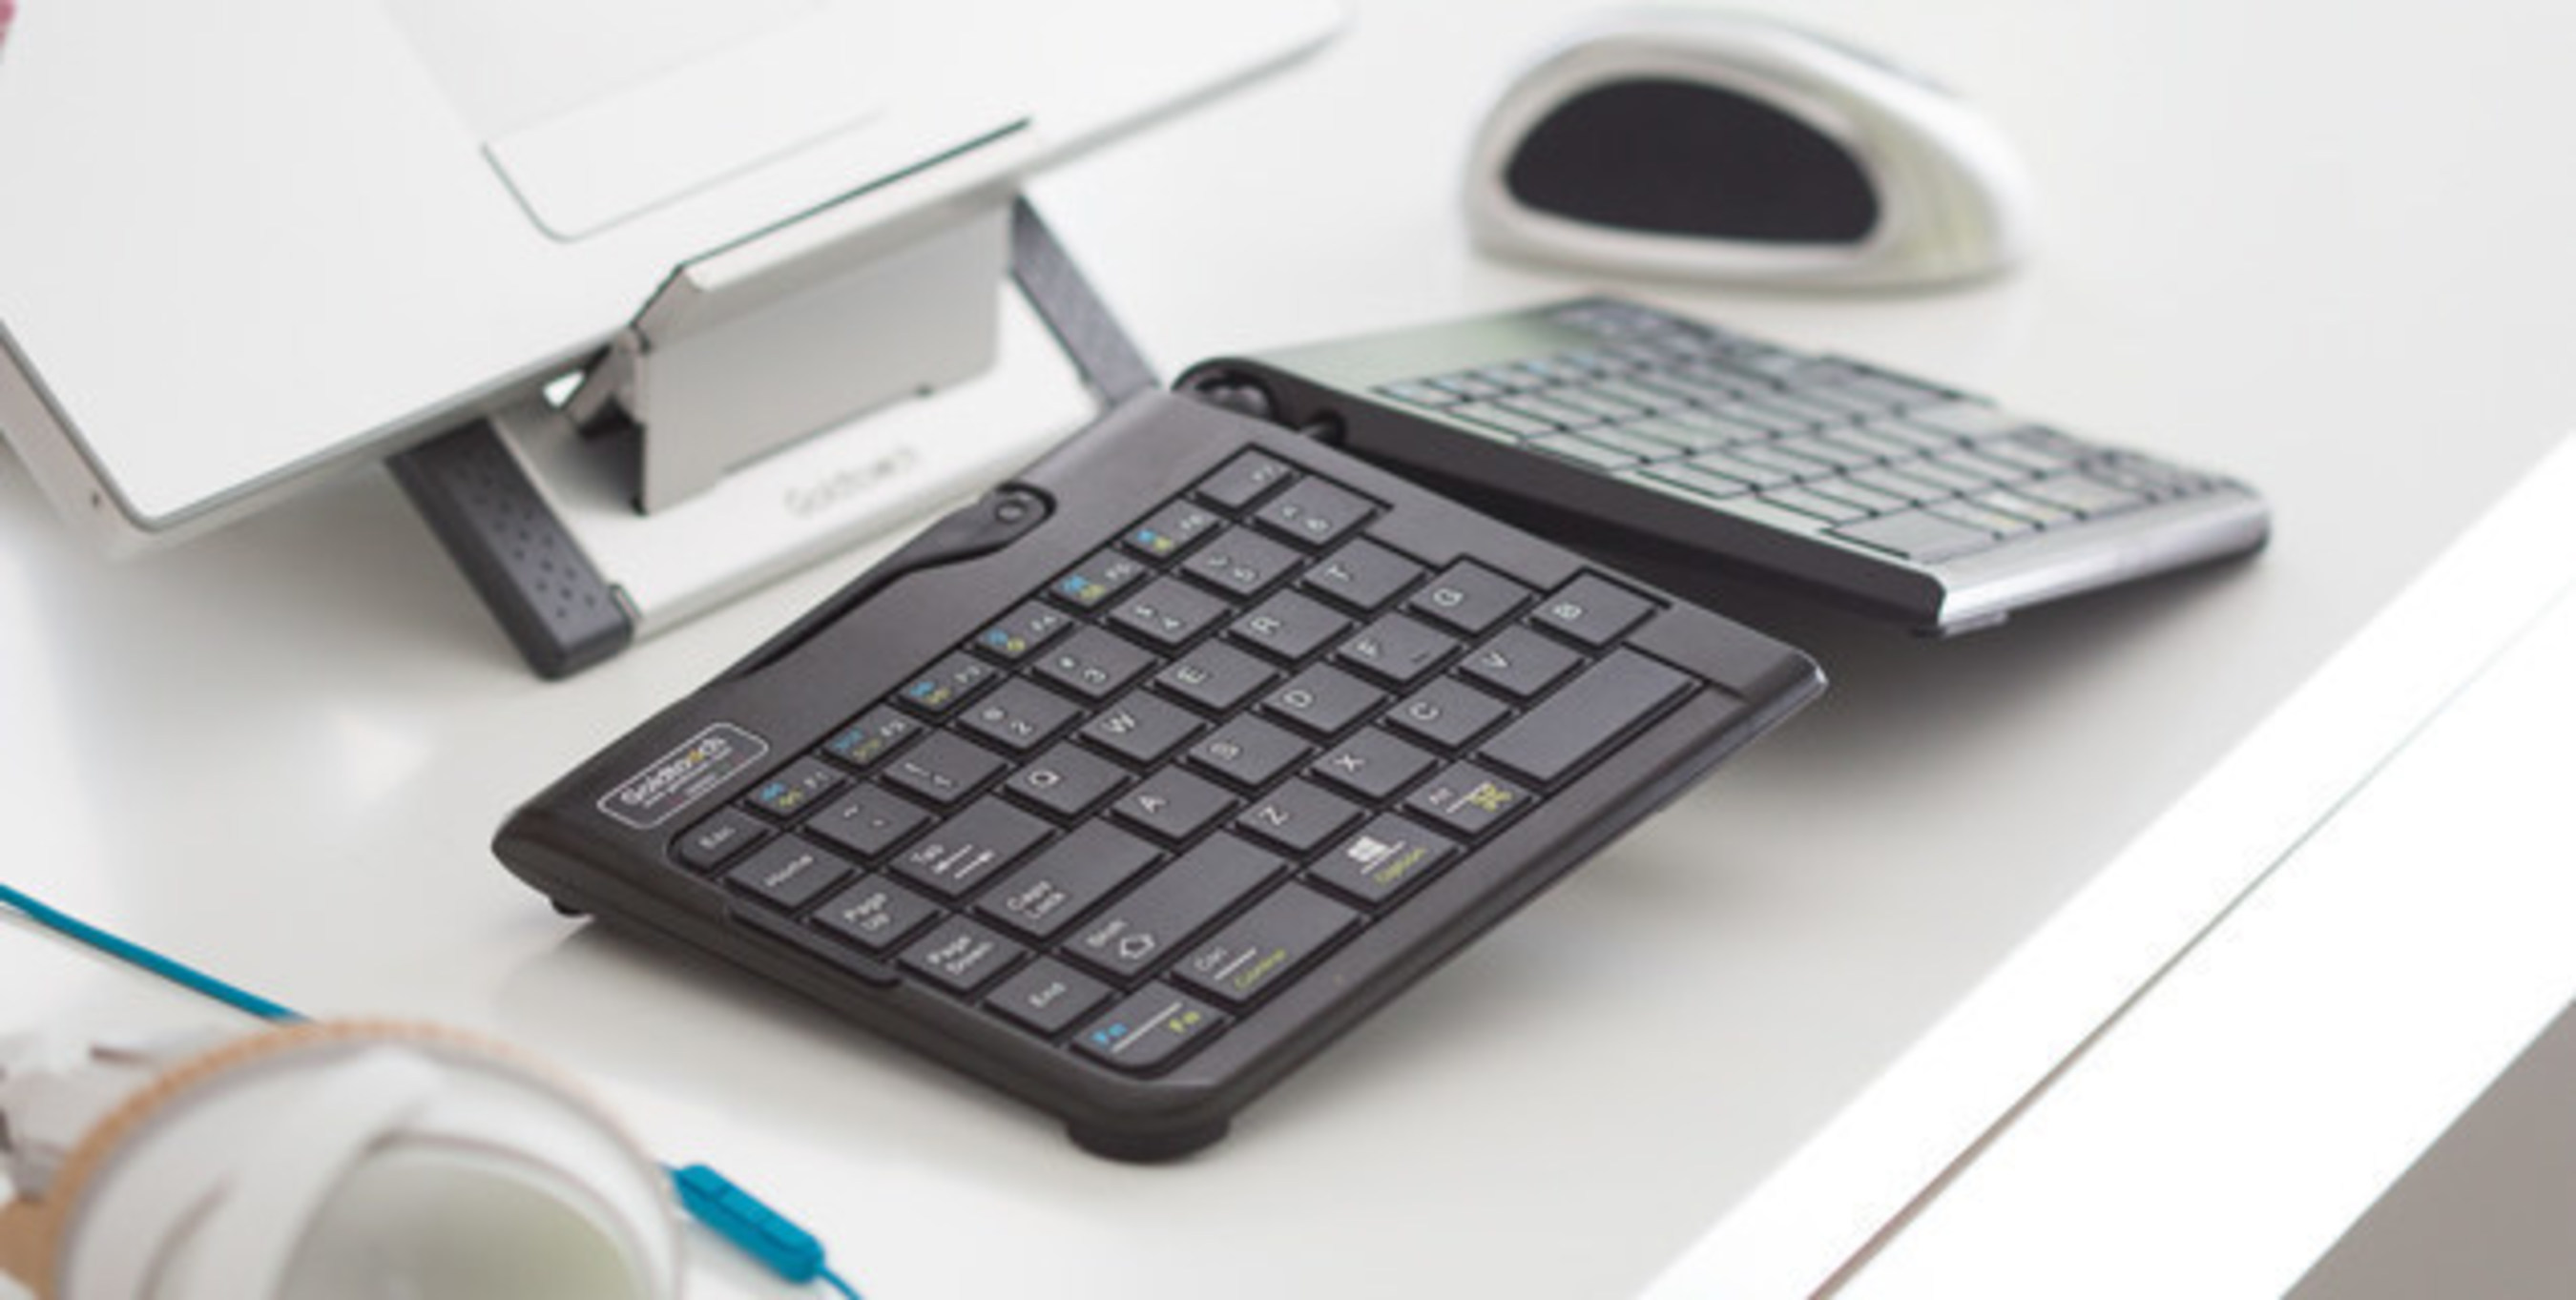 The Go!2 Mobile Bundle includes the Go!2 Mobile Keyboard and Go! Aluminum Travel and Laptop Stand. Two Incredible products for one incredible price for a limited time. Available in both wired and wireless configurations.